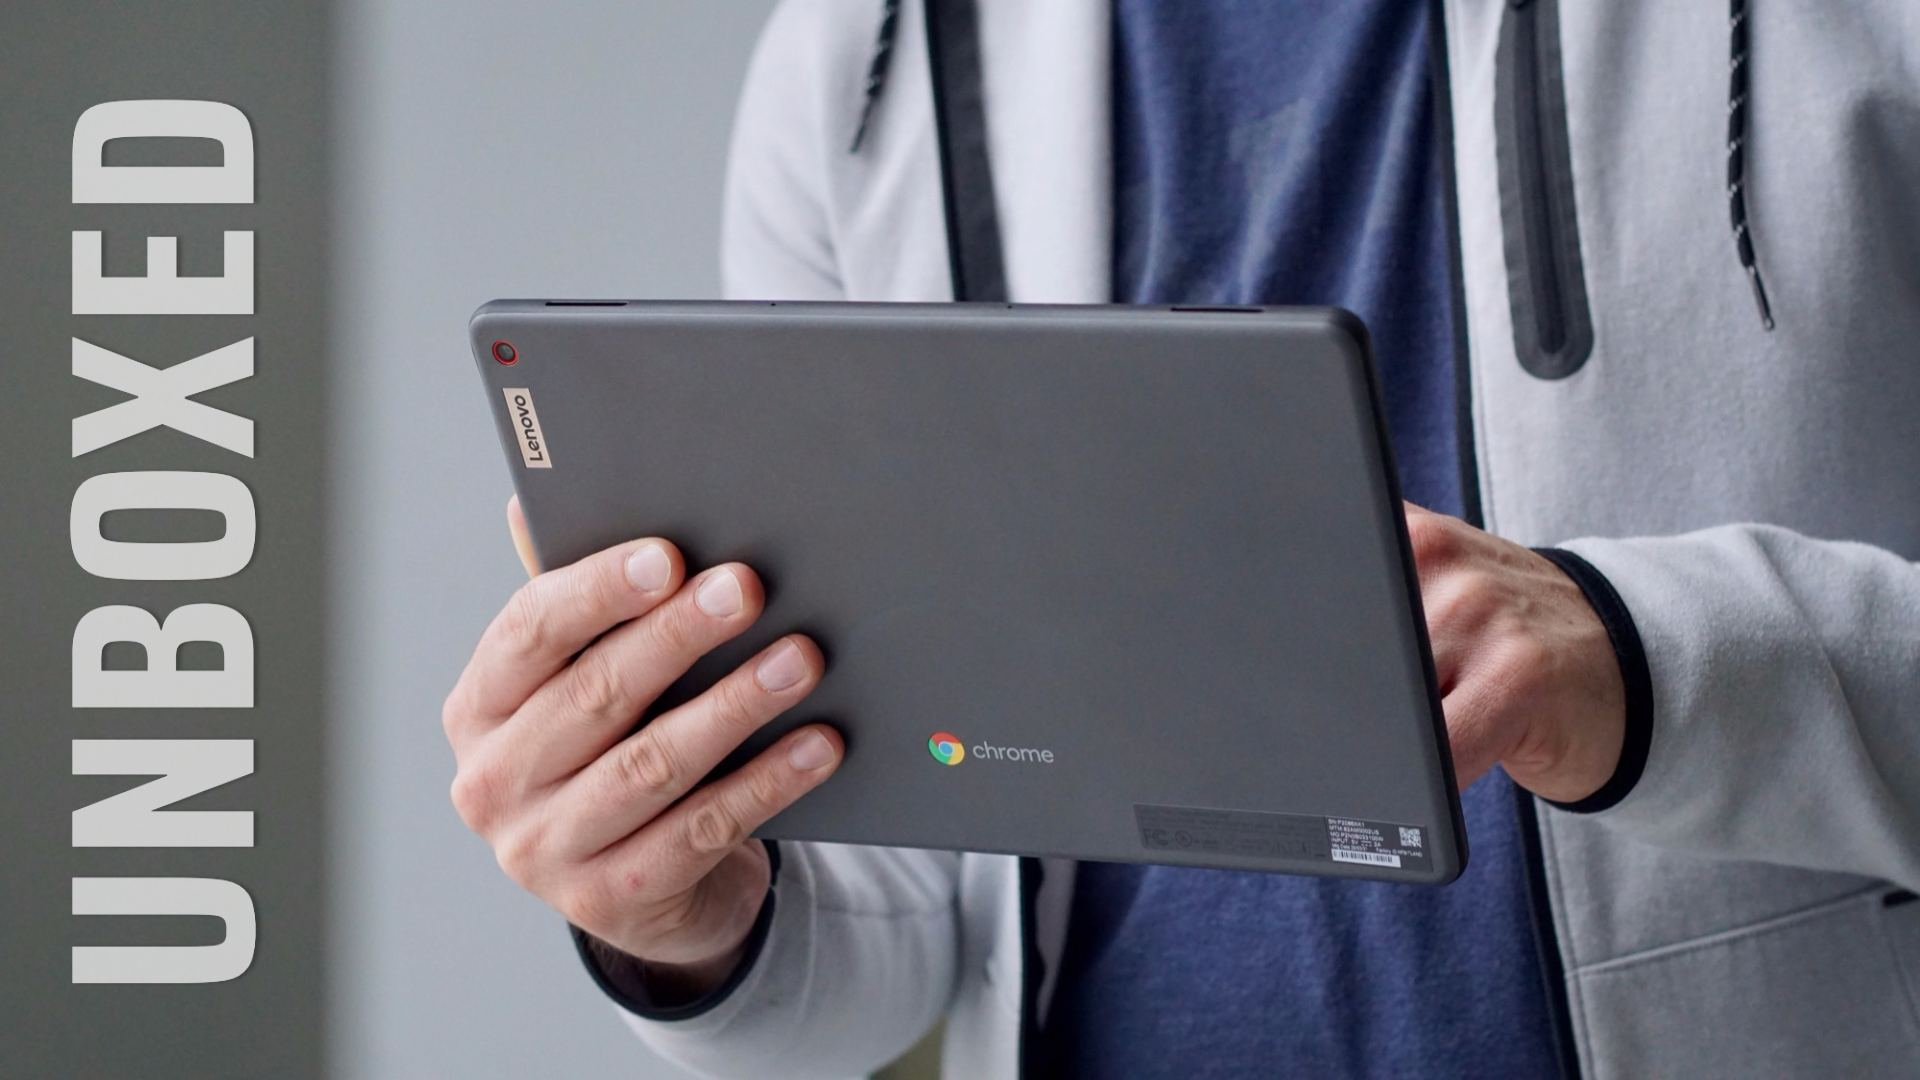 Unboxing & hands-on with the rugged version of the Lenovo Chromebook Duet